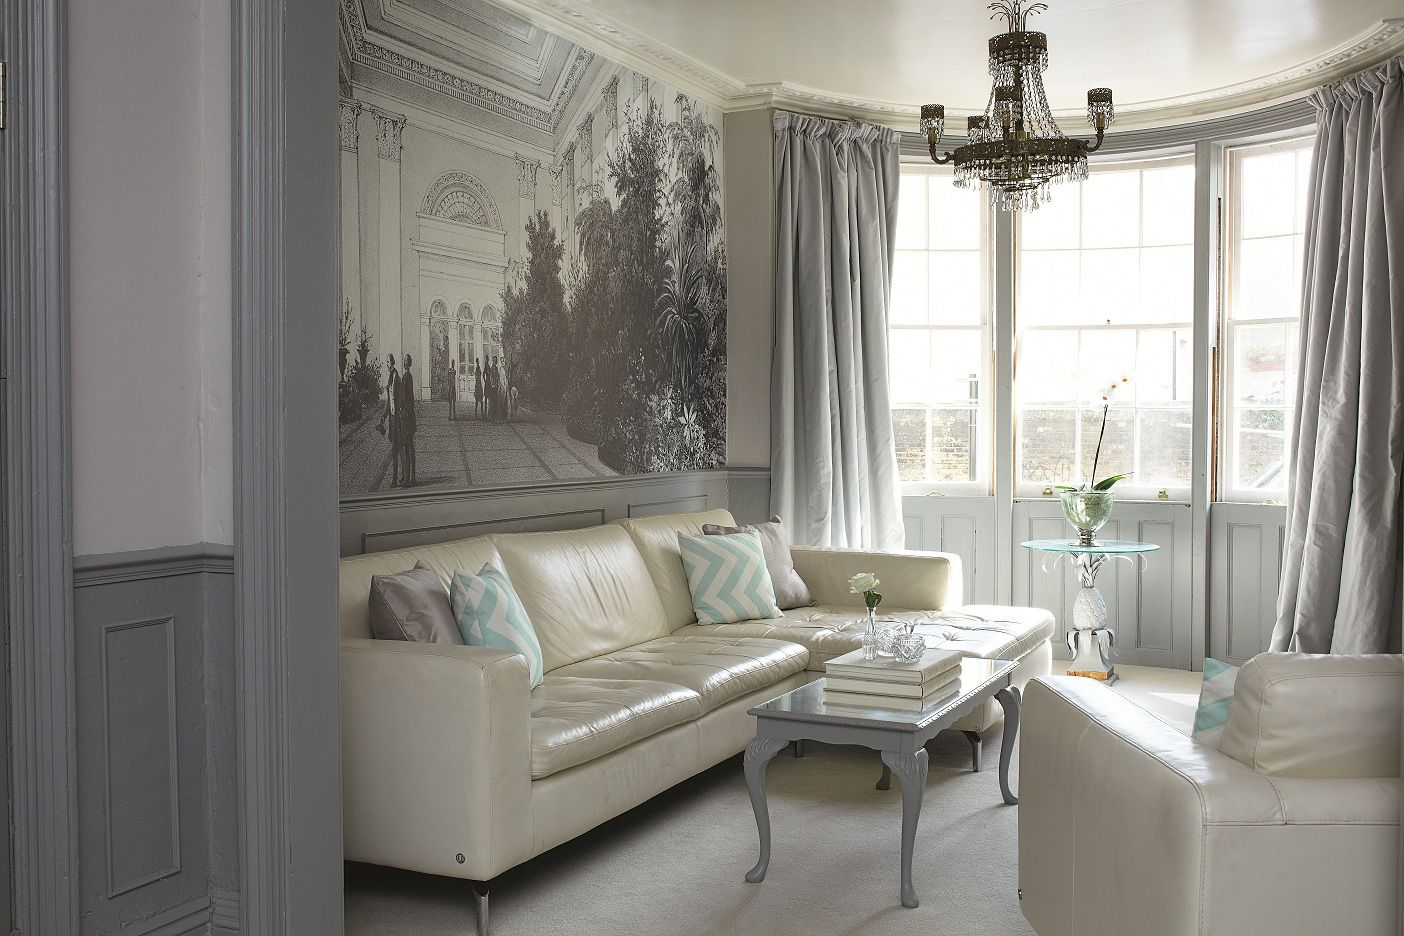 Well done @jcluroe for bagging a place on BBC2 The Great Interior Design  Challenge Quarter